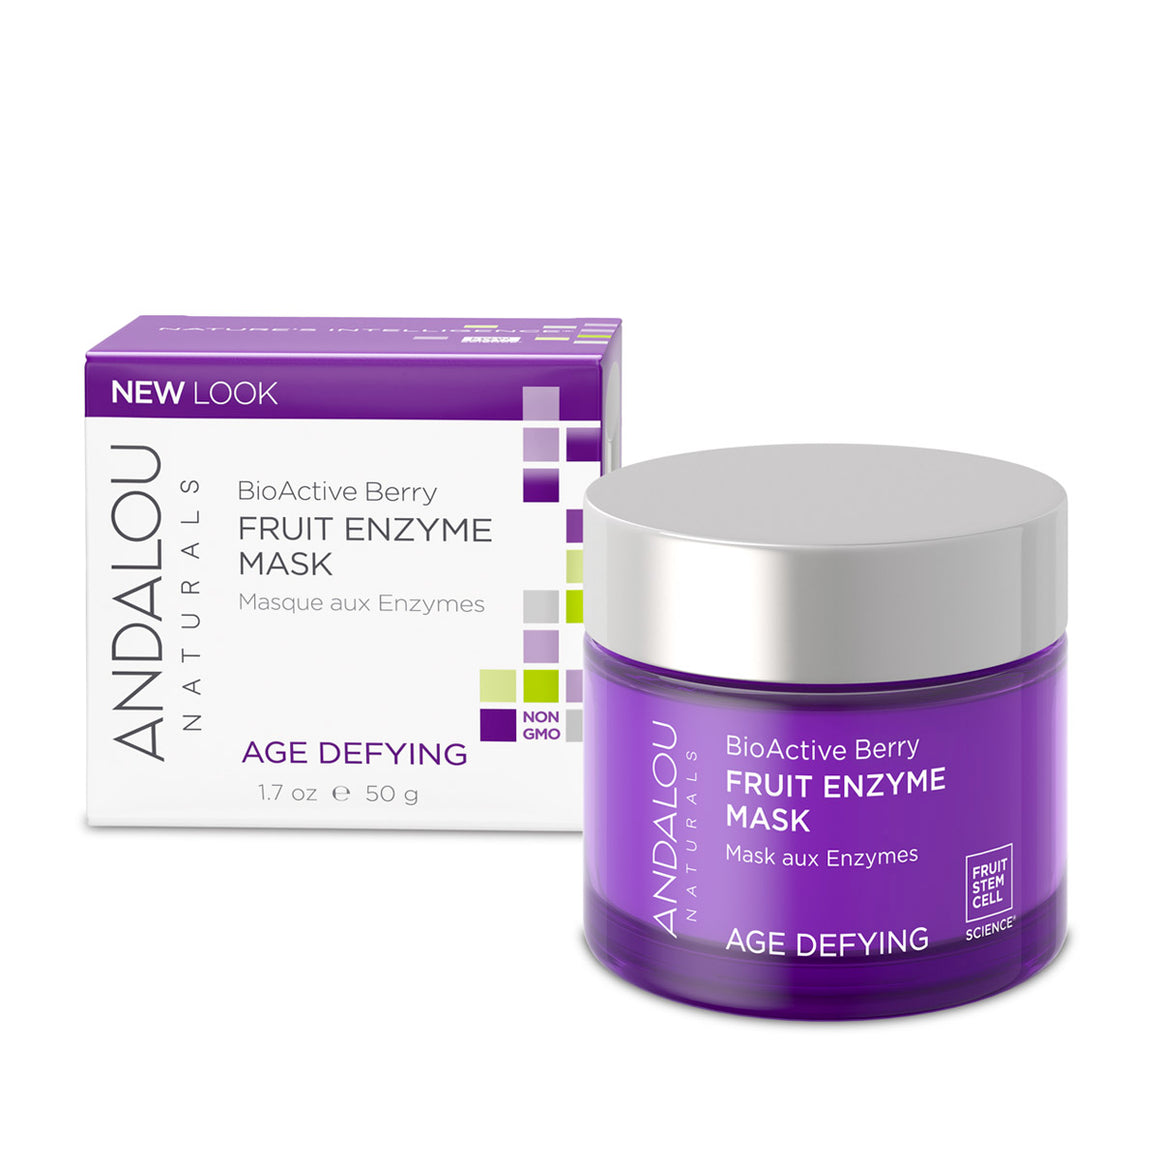 BioActive Berry Fruit Enzyme Mask